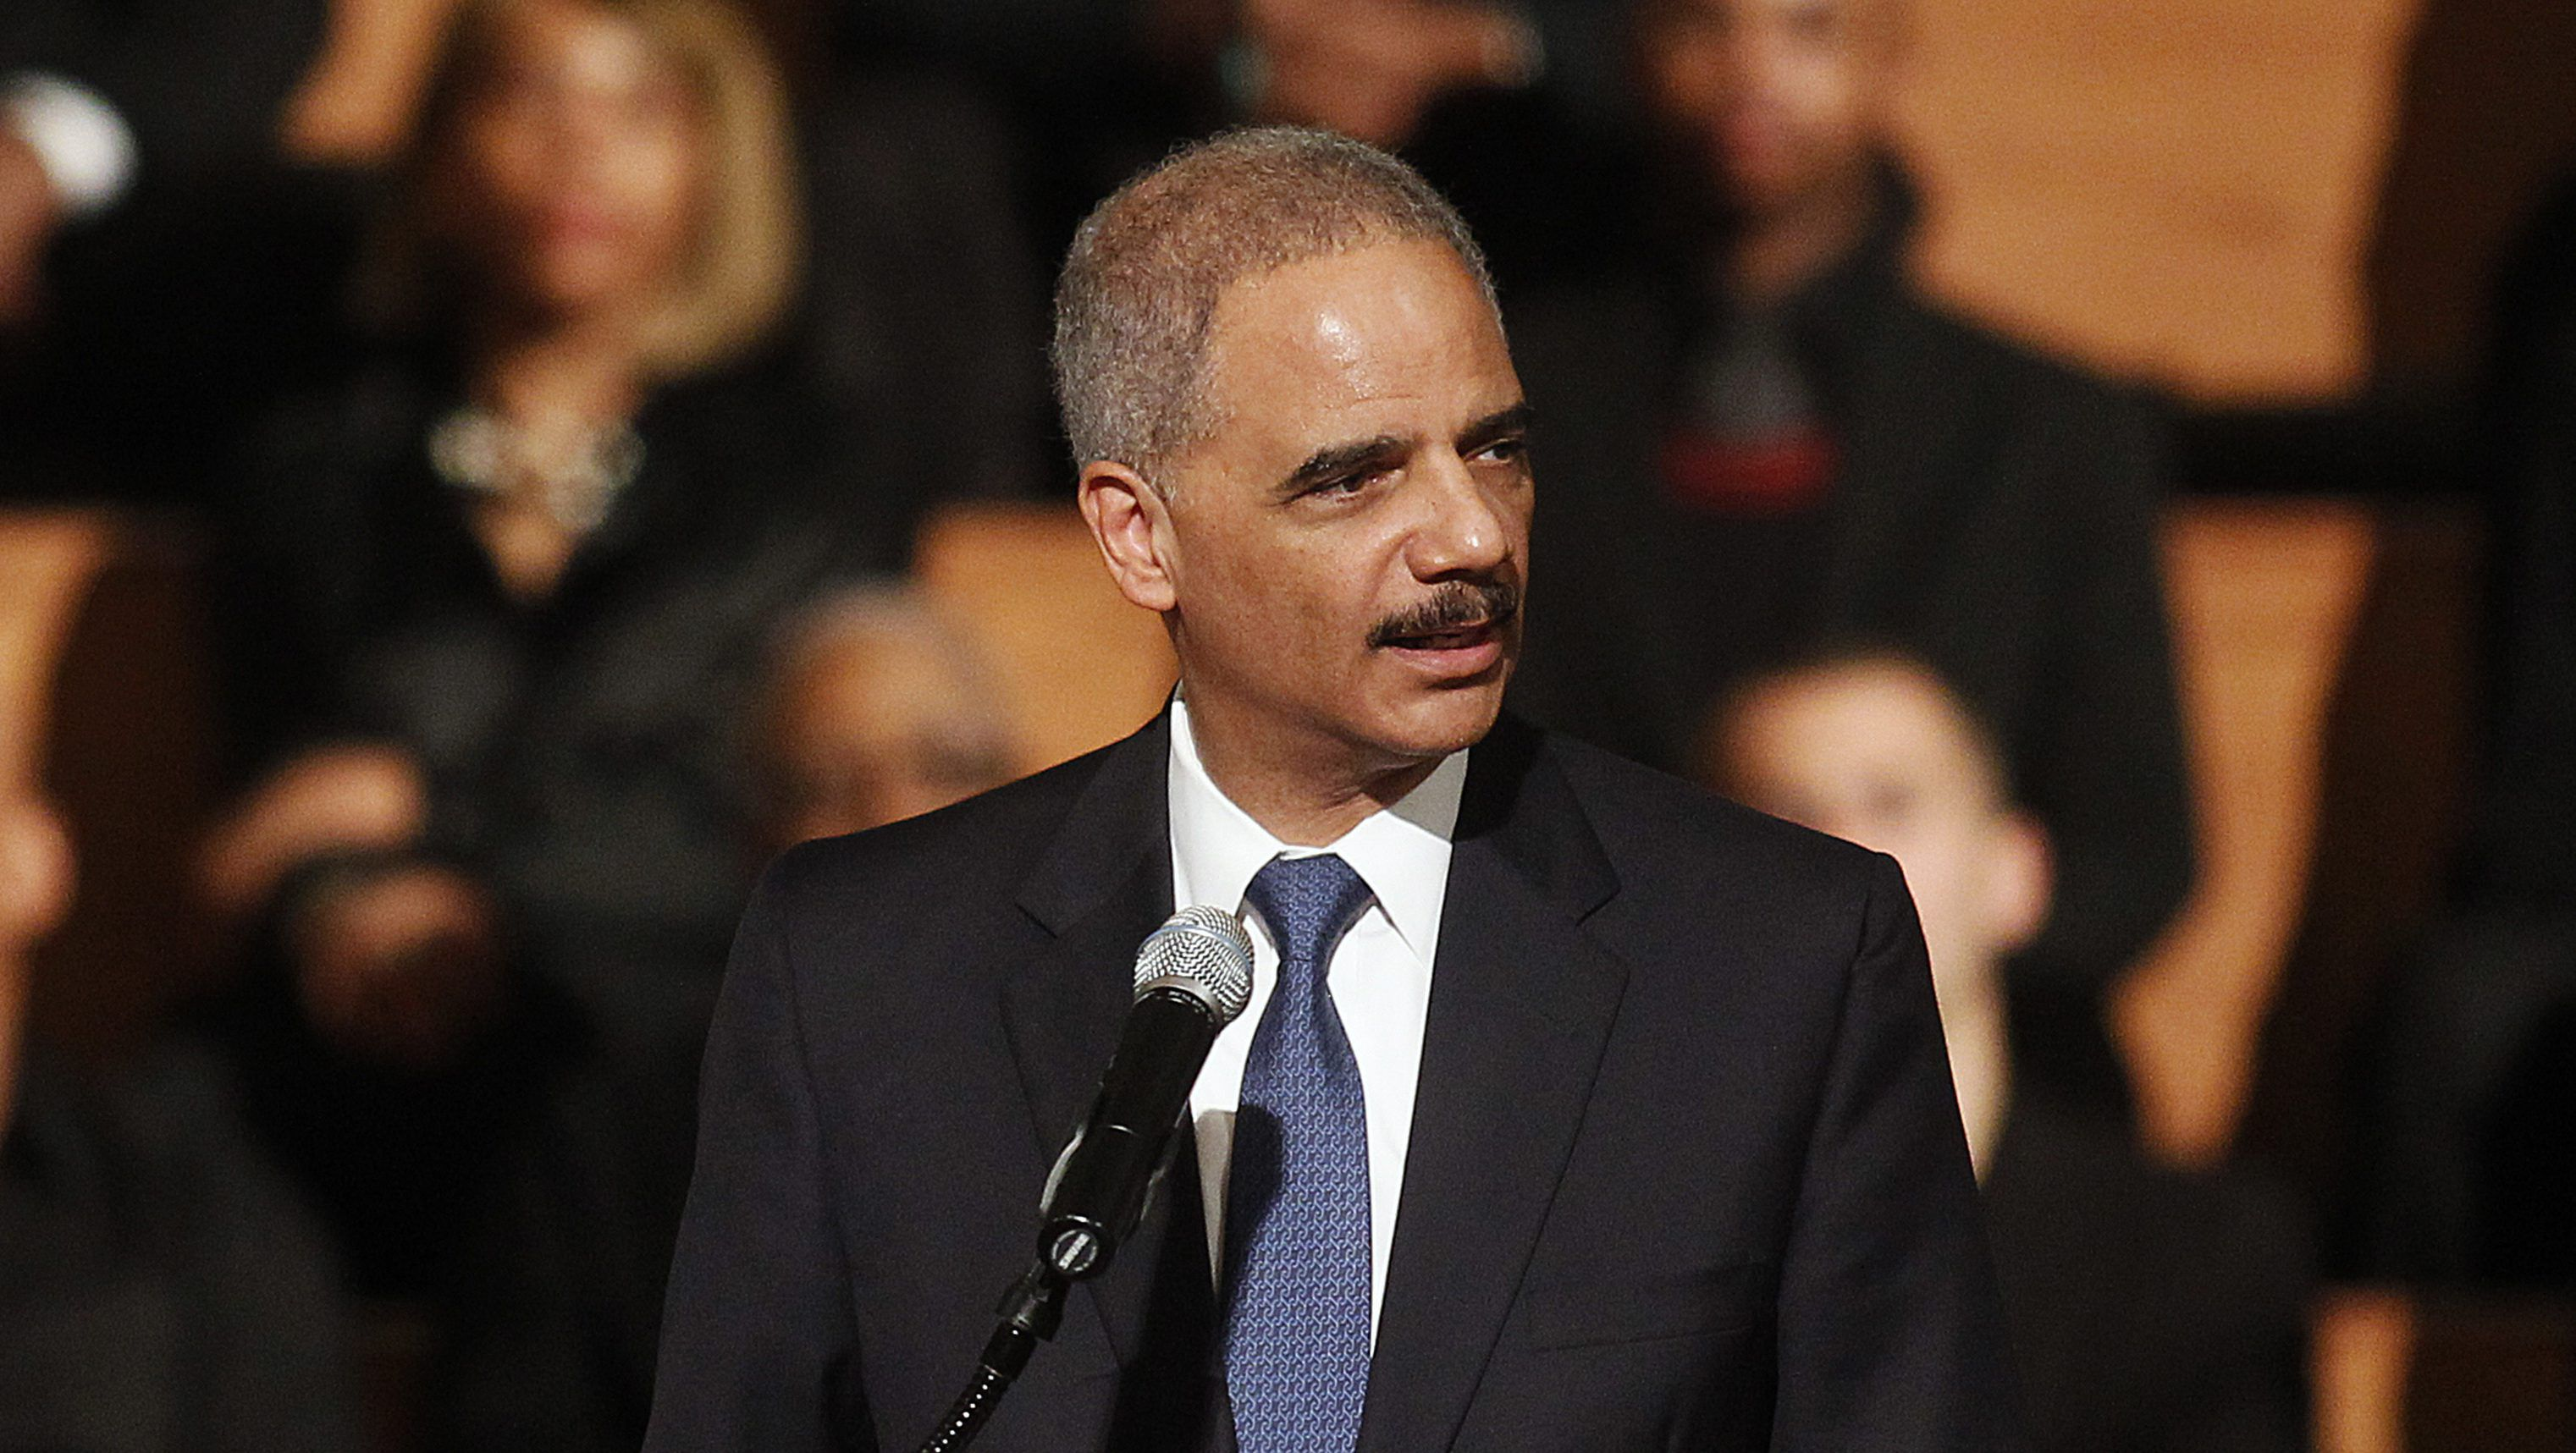 WATCH Eric Holder says he could unify the country if he defeated Trump in 2020